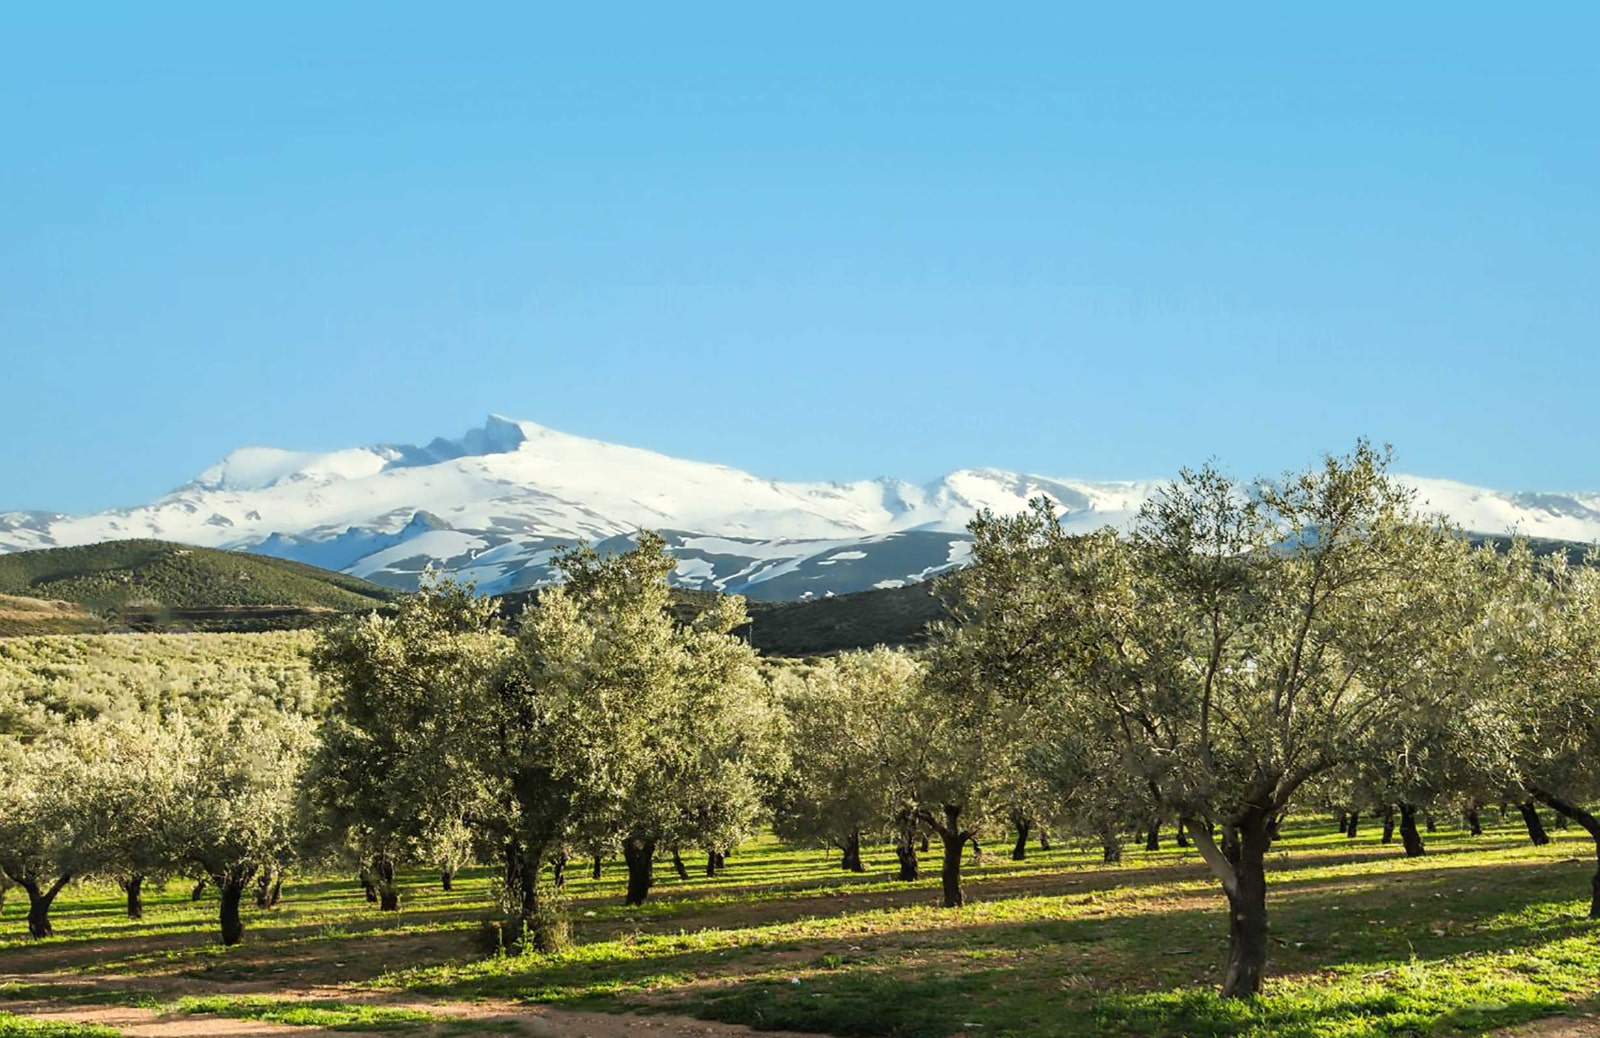 Sierra Nevada peaks seen from the olive grove of Quaryat Dillar in Granada